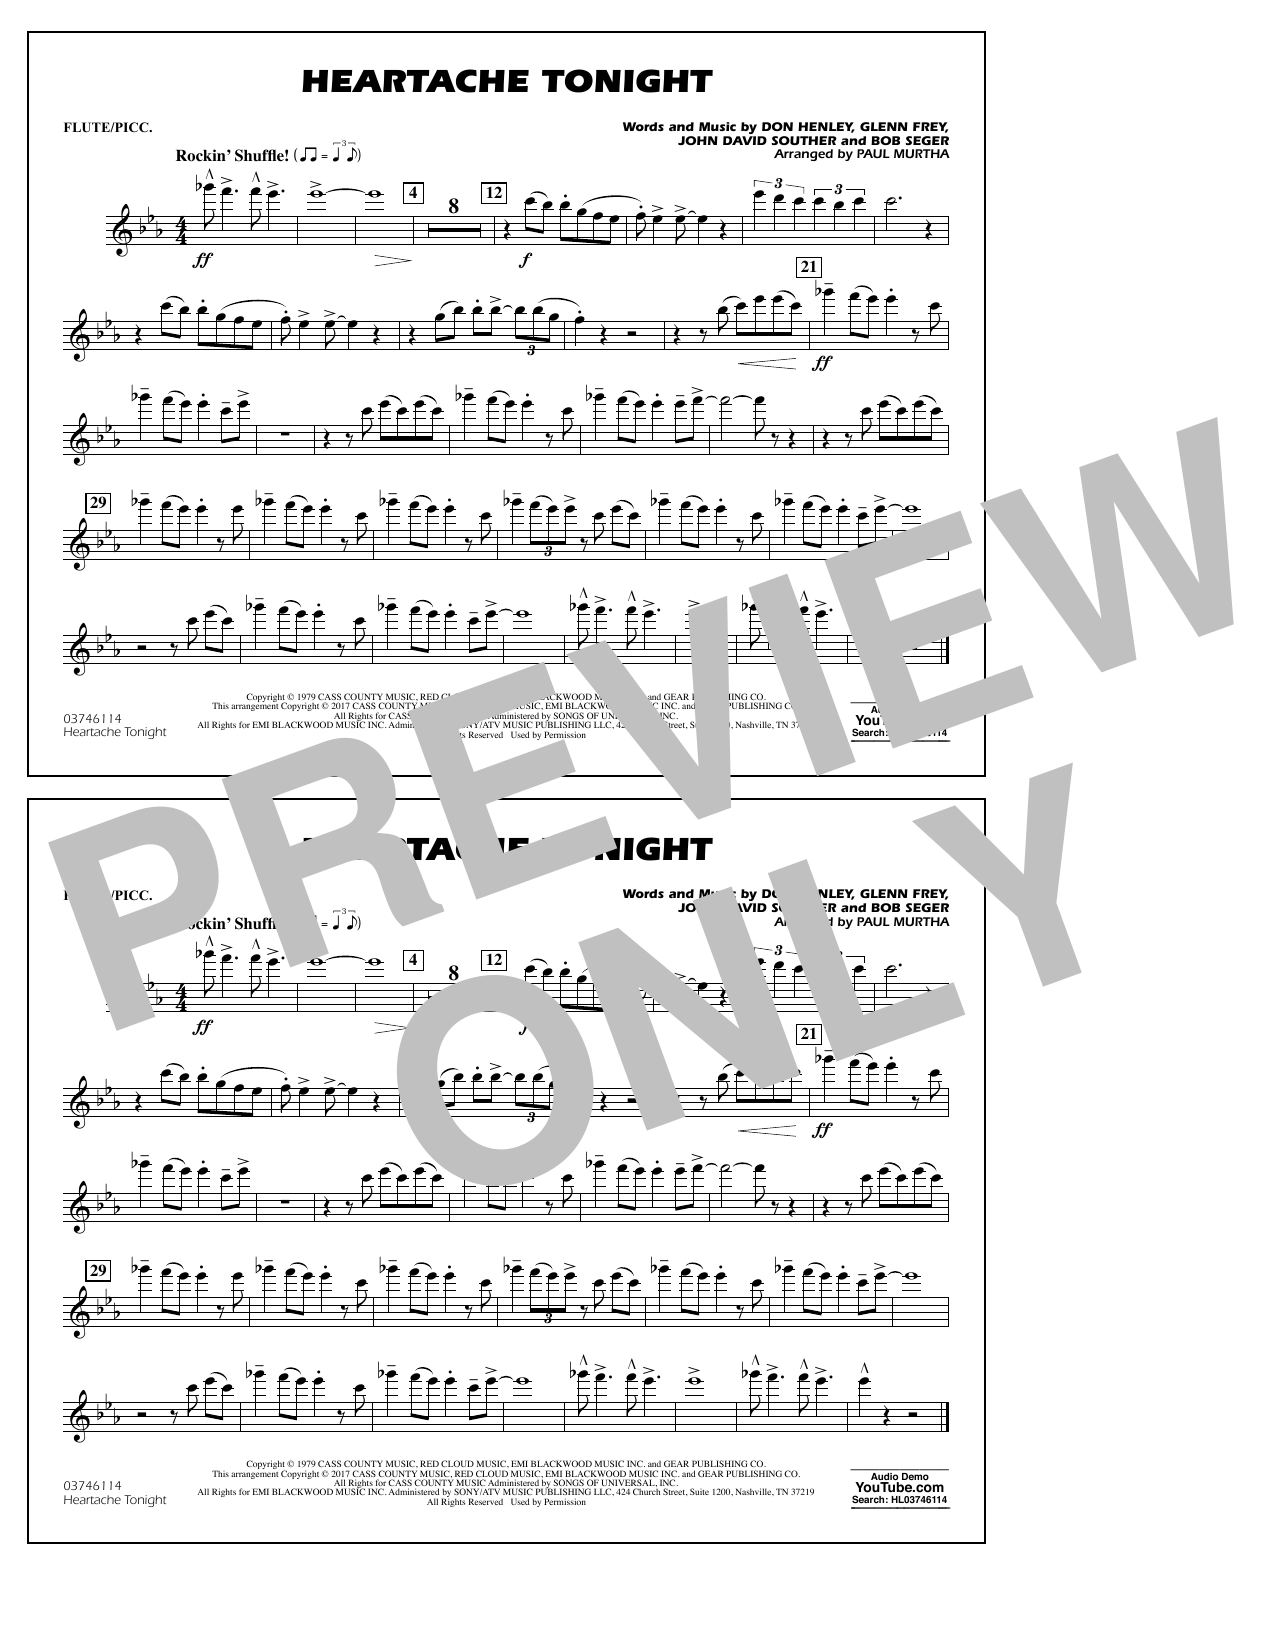 Heartache Tonight - Flute/Piccolo Sheet Music